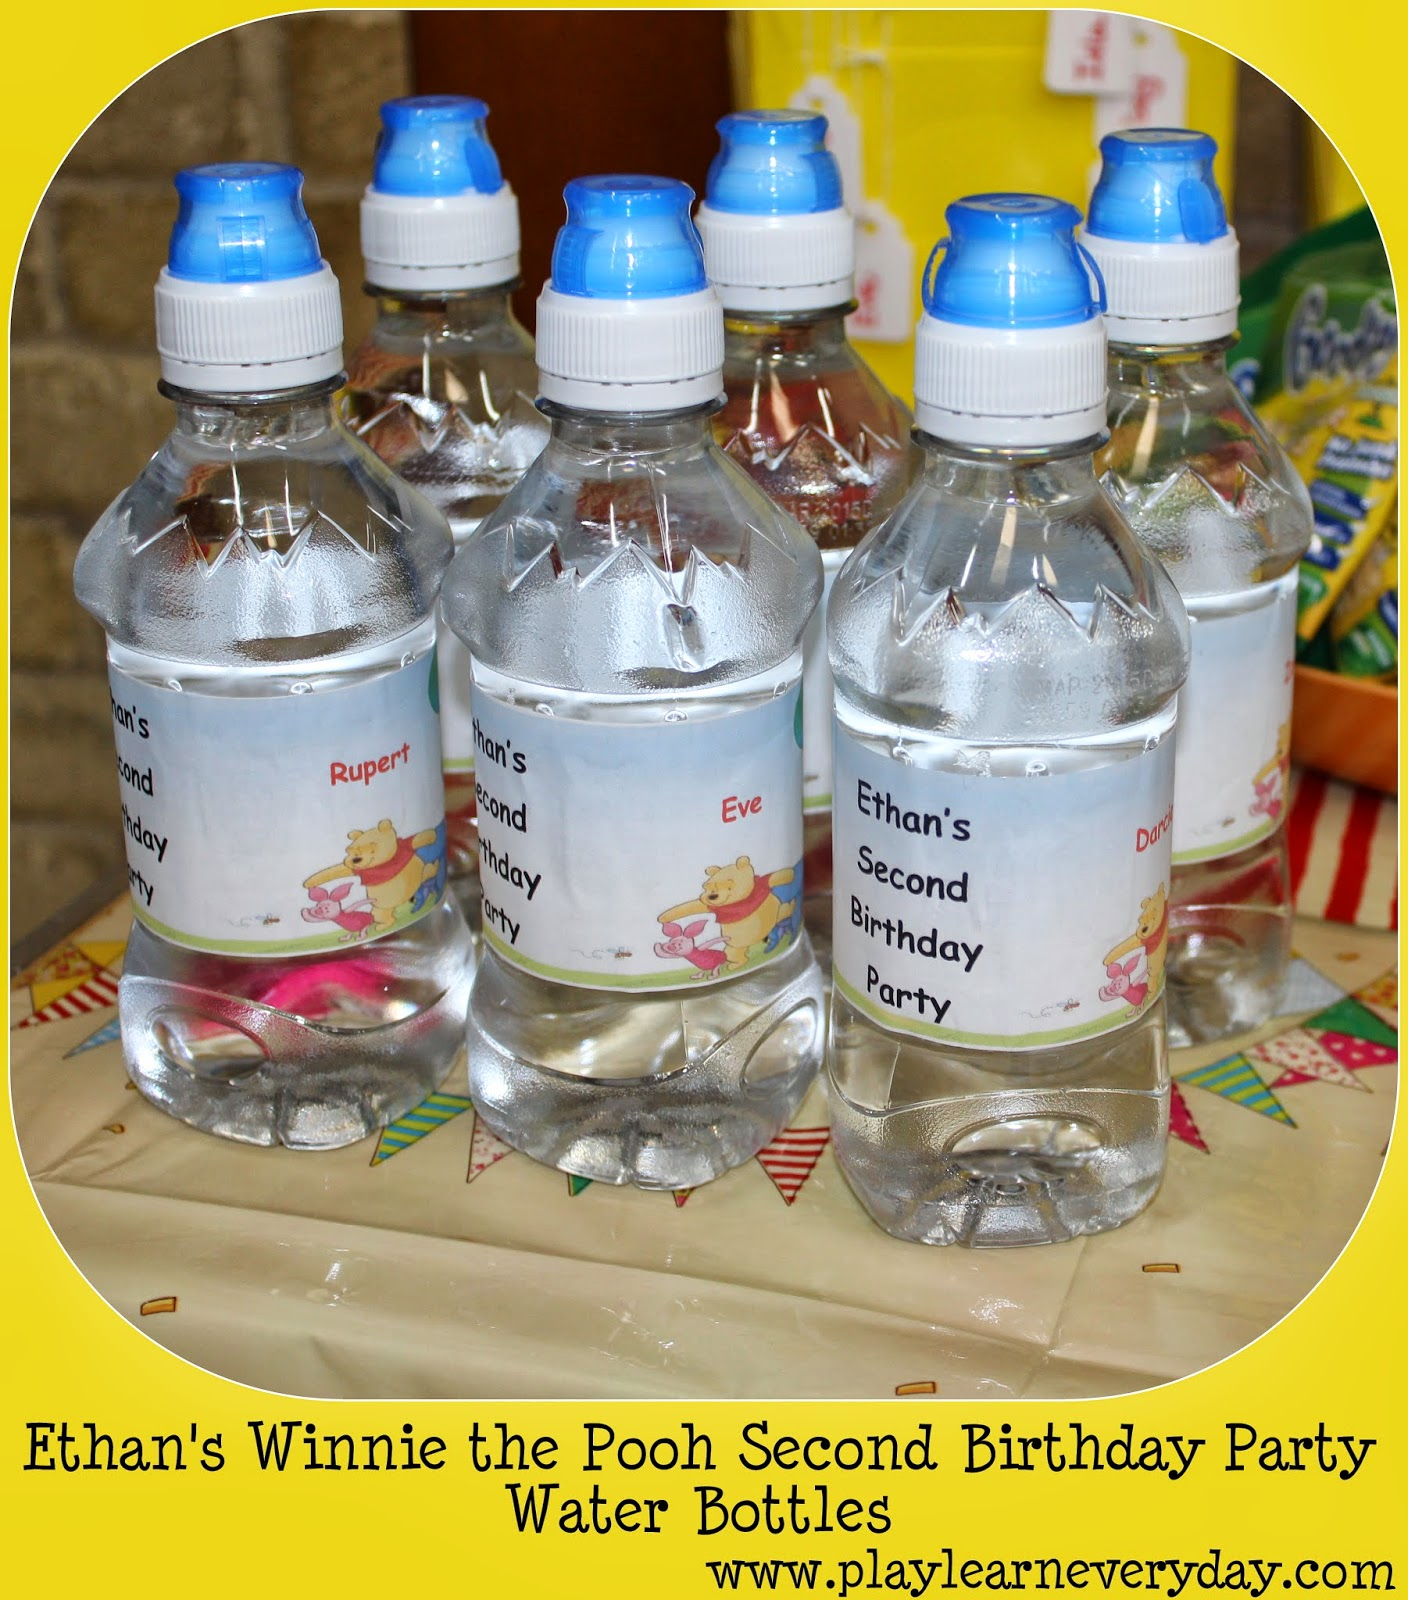 Ethans Winnie the Pooh Second Birthday Party Play and Learn Every Day